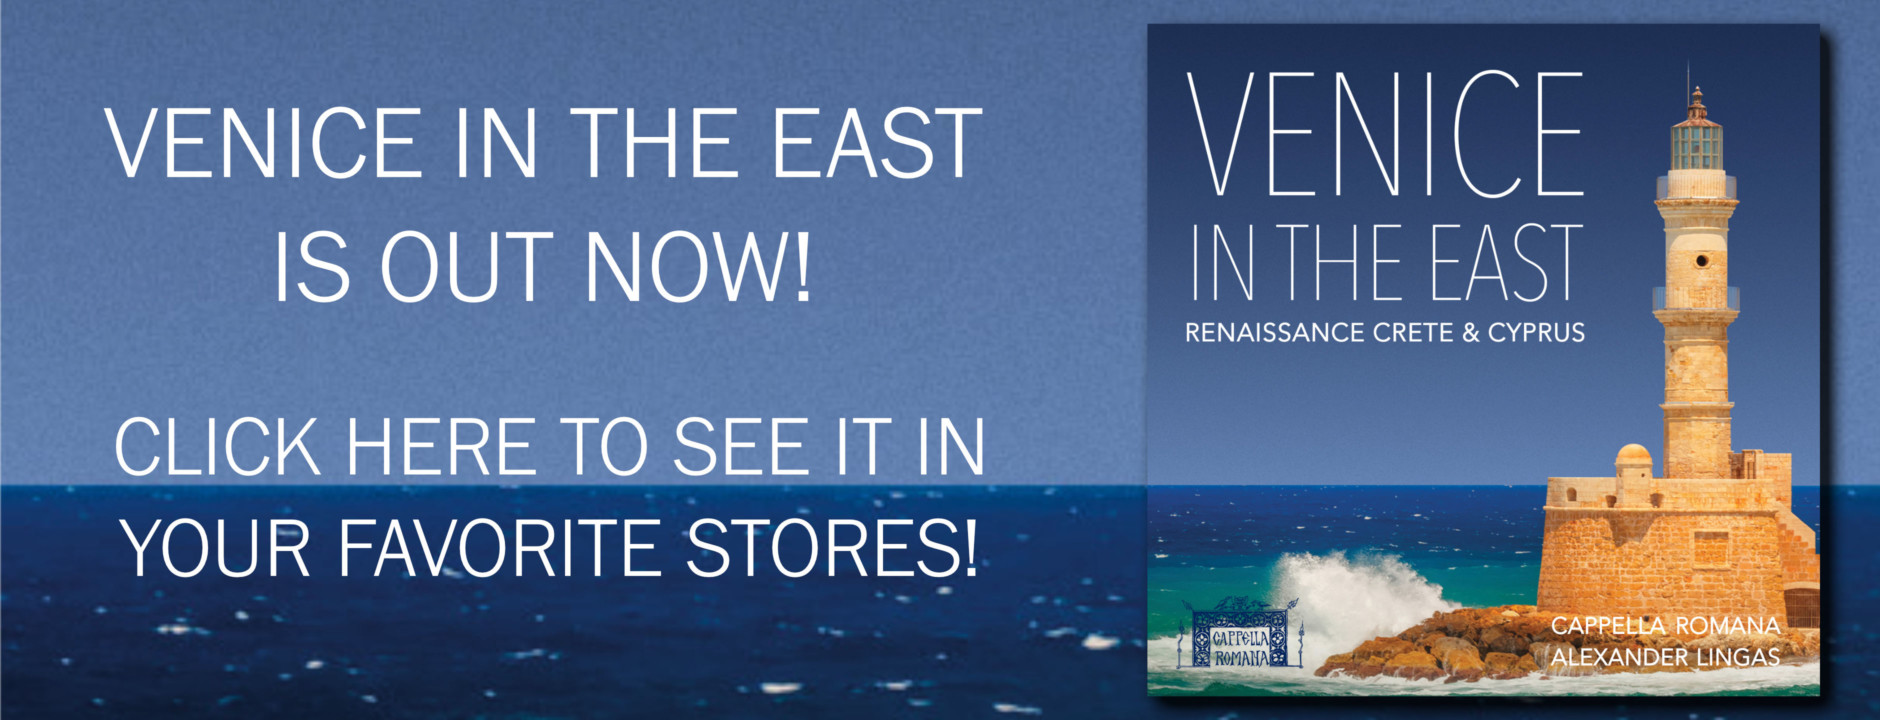 Venice in the East is available now